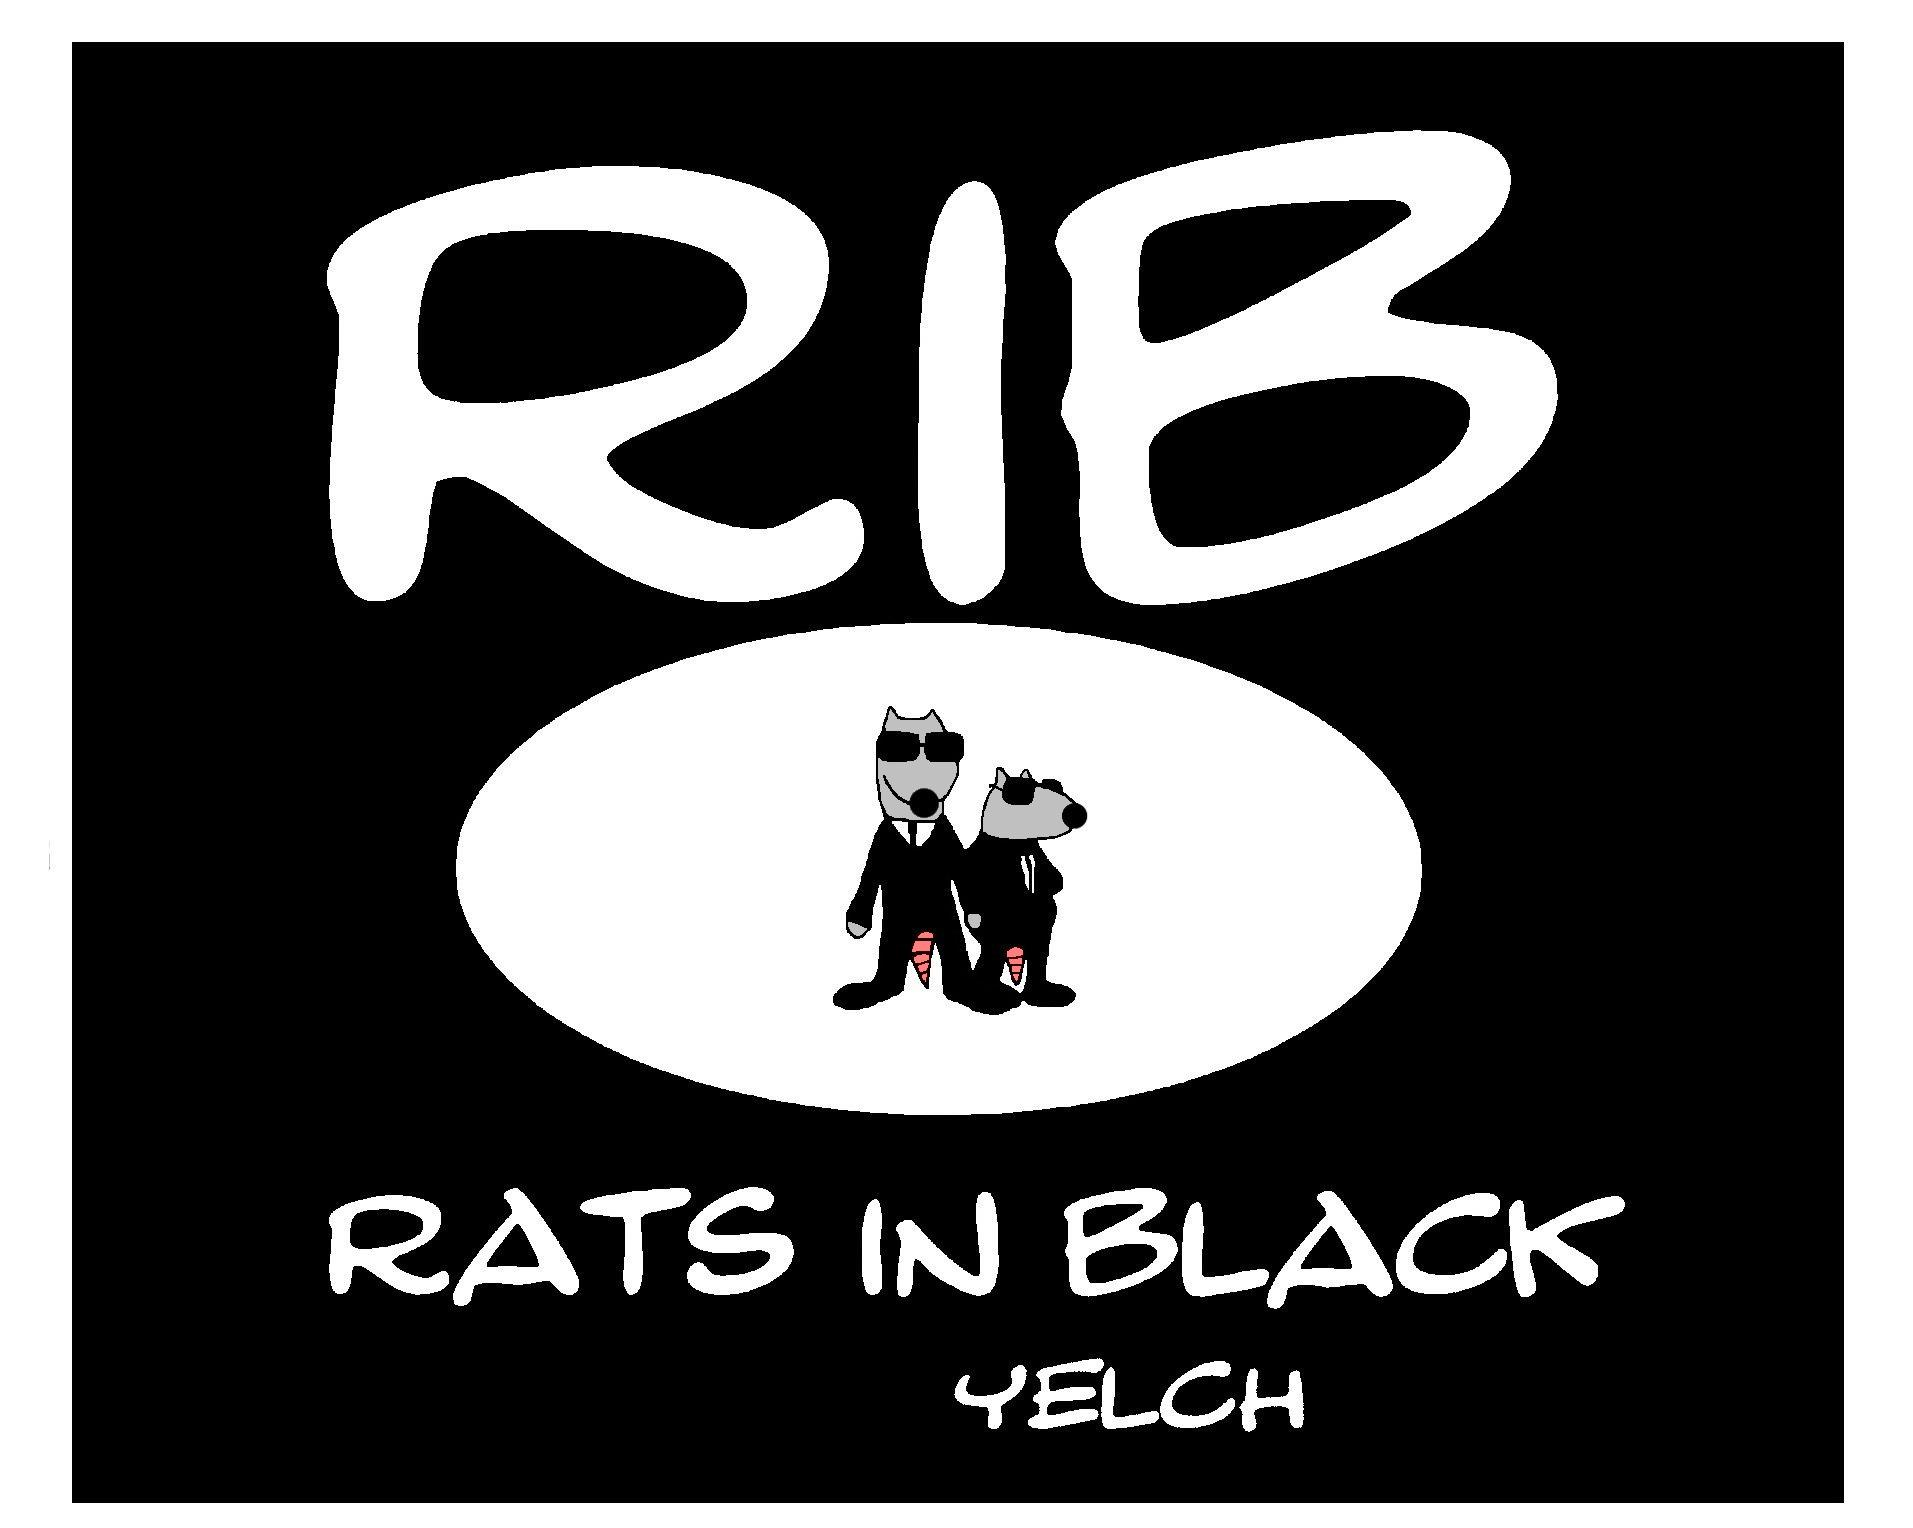 Rats In Black